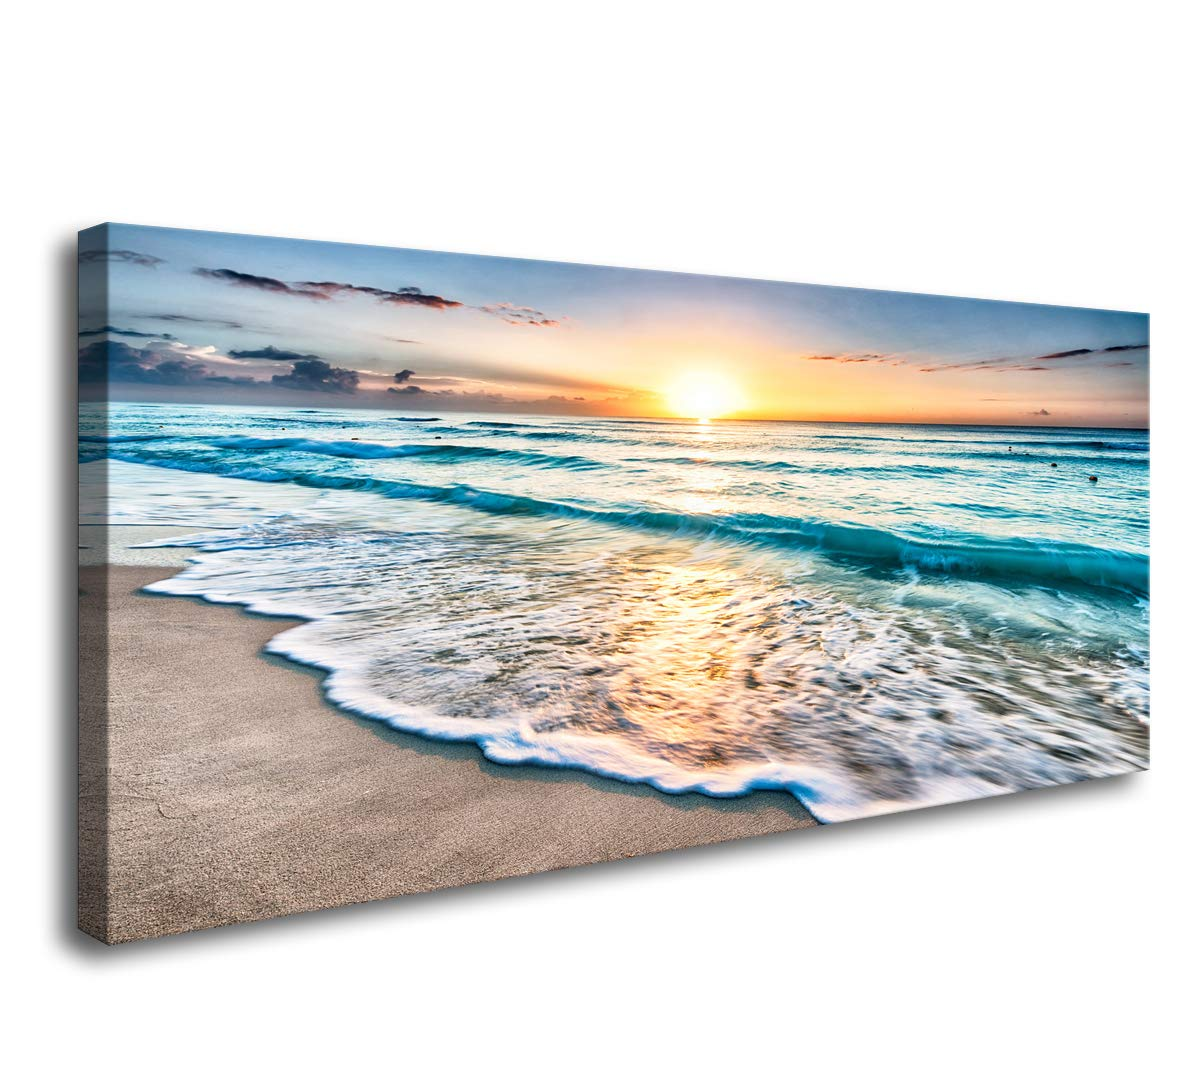 Baisuart S02262 Canvas Prints Wall Art Beach Sunset Ocean Waves Nature Pictures Stretched Canvas Wooden Framed for Living Room Bedroom and Office